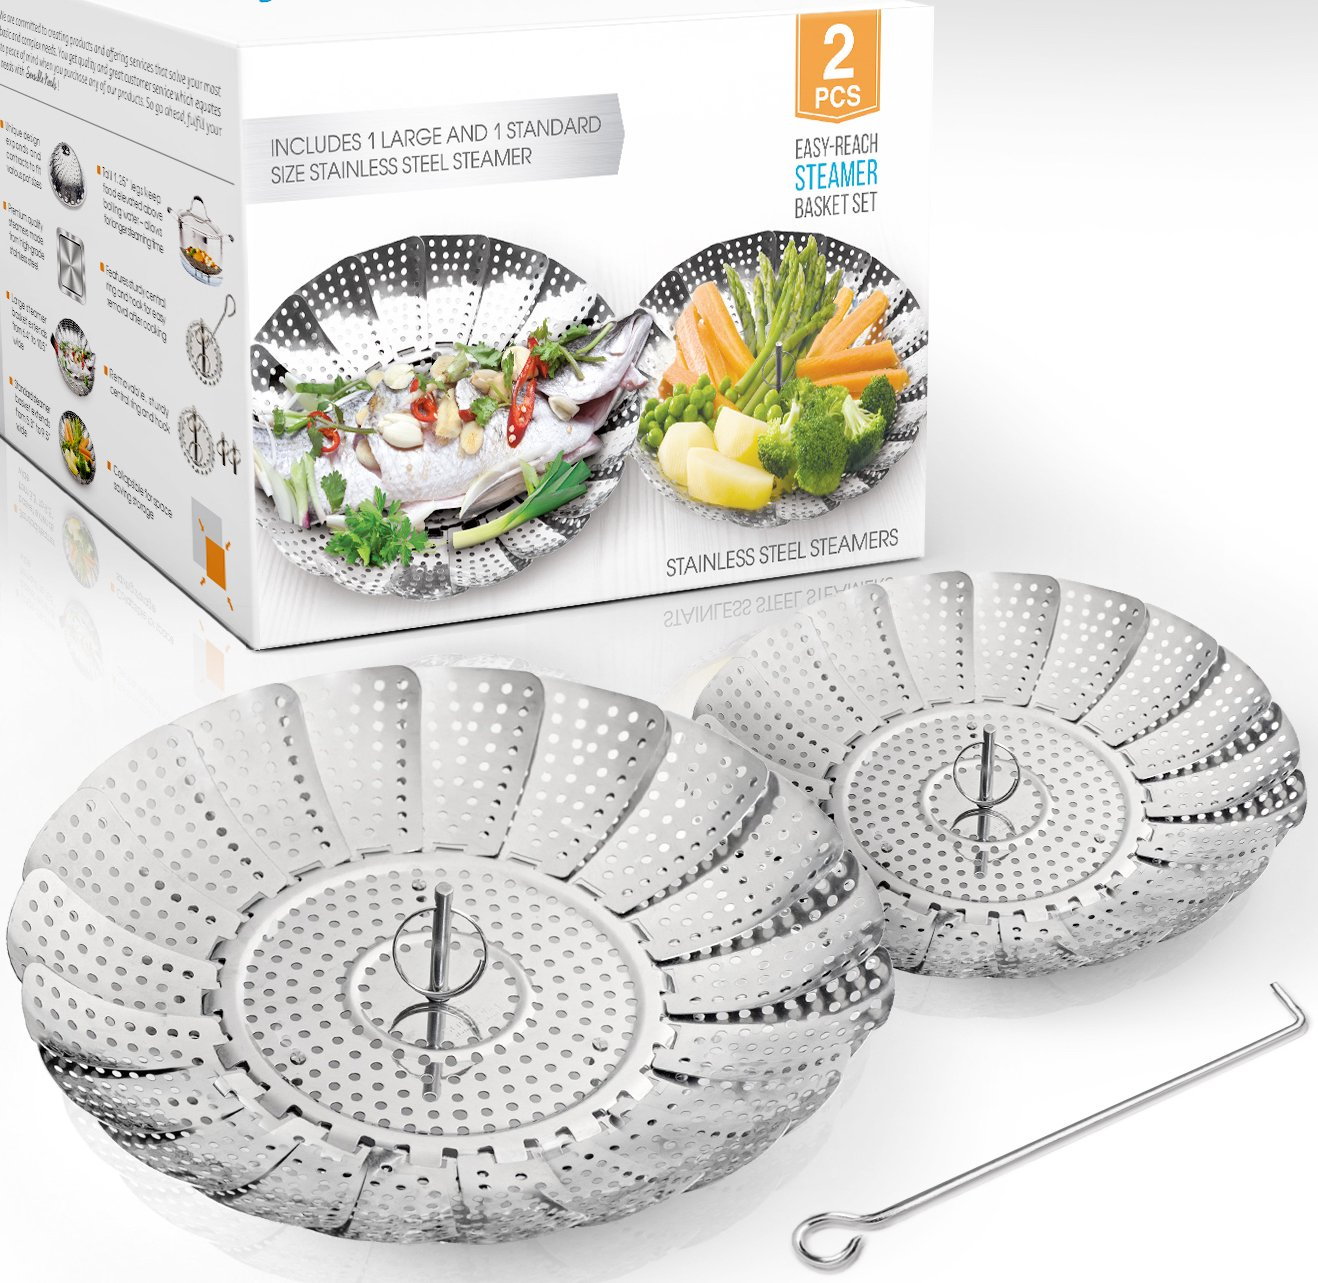 TWO-PACK (Large and Standard) Vegetable Steamer Basket Set - 2x Steamer Inserts for Instant Pot + Safety Tool - 100% Stainless Steel - Pressure Cooker & Instant Pot Accessories, Pot in Pot - Egg Rack